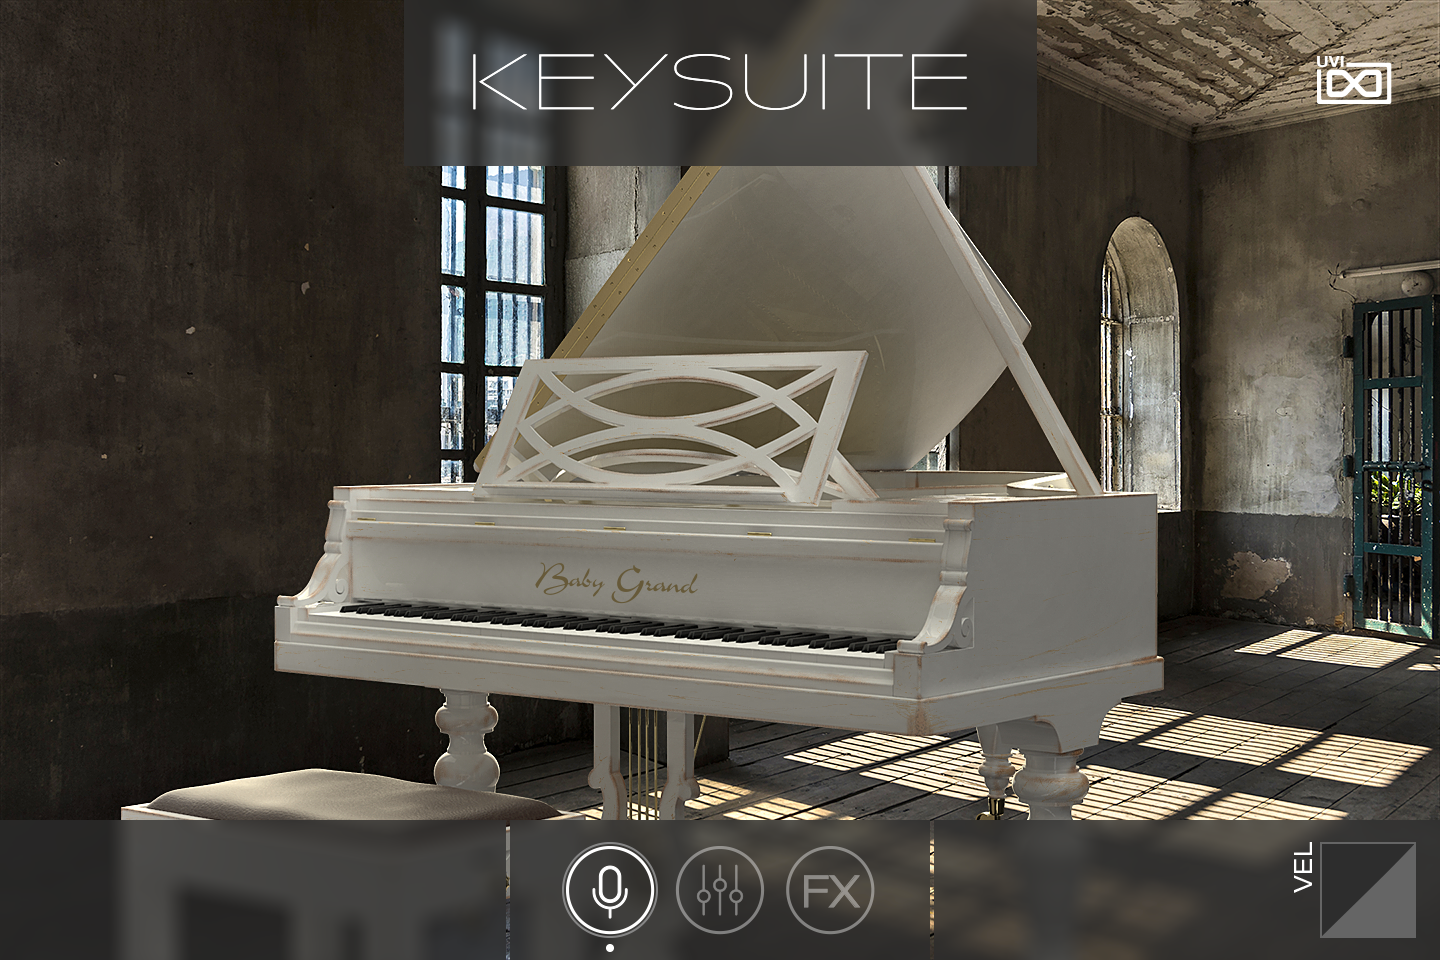 UVI Key Suite Acoustic | Baby Grand Main